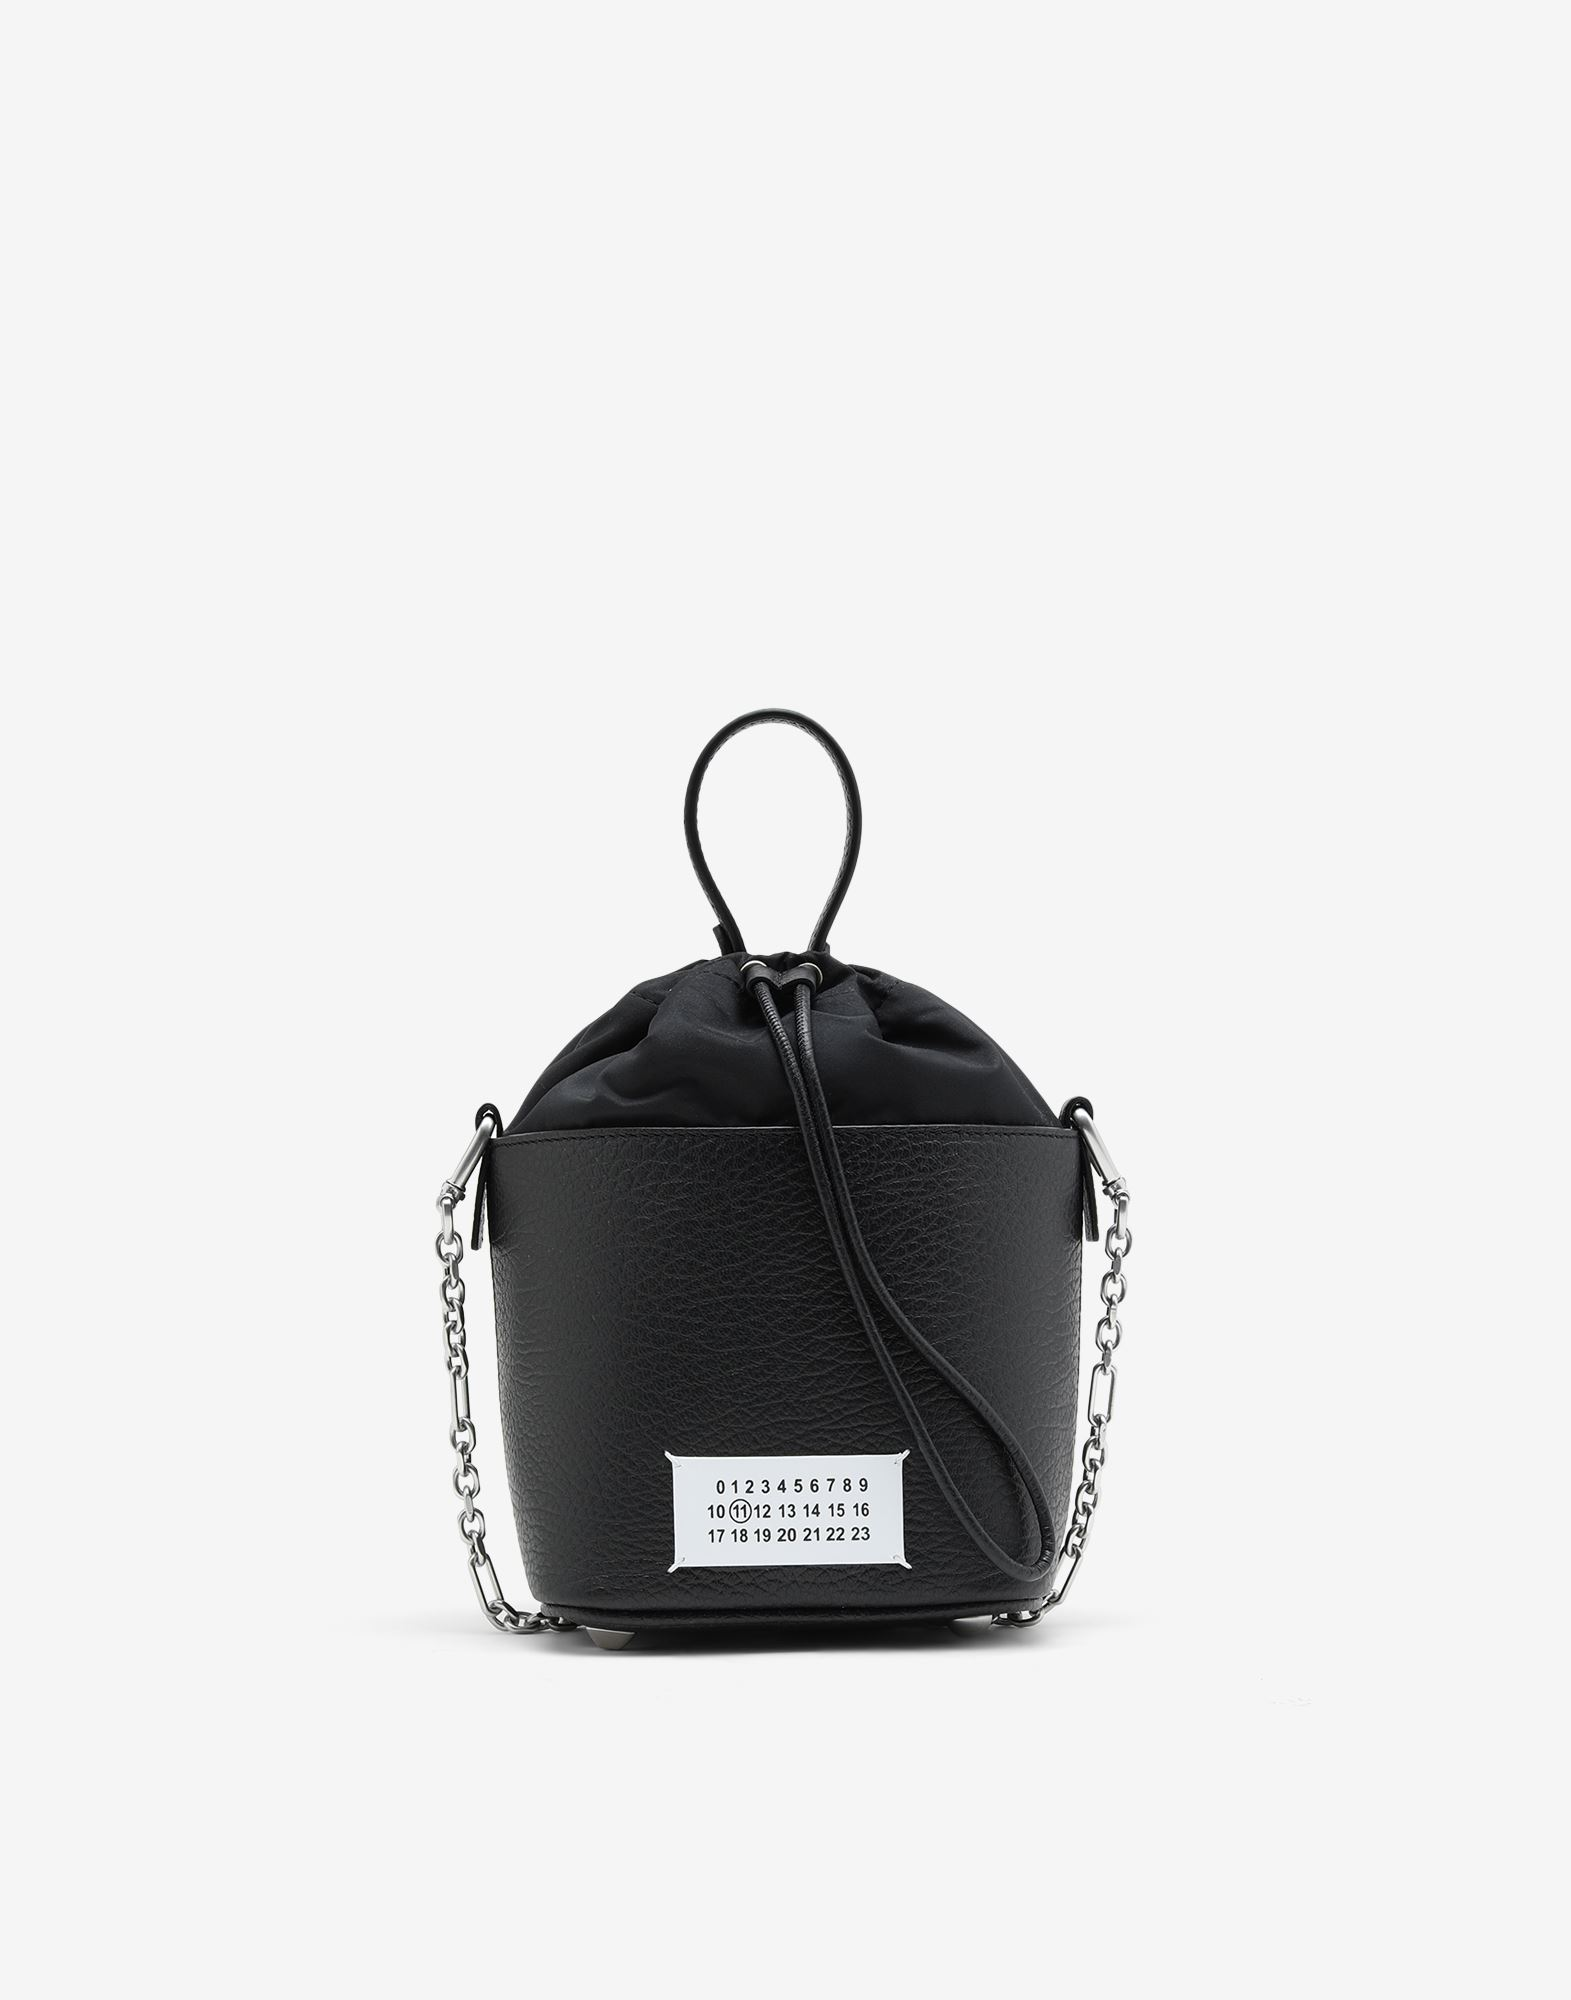 MAISON MARGIELA Textured leather bucket bag Shoulder bag Woman f